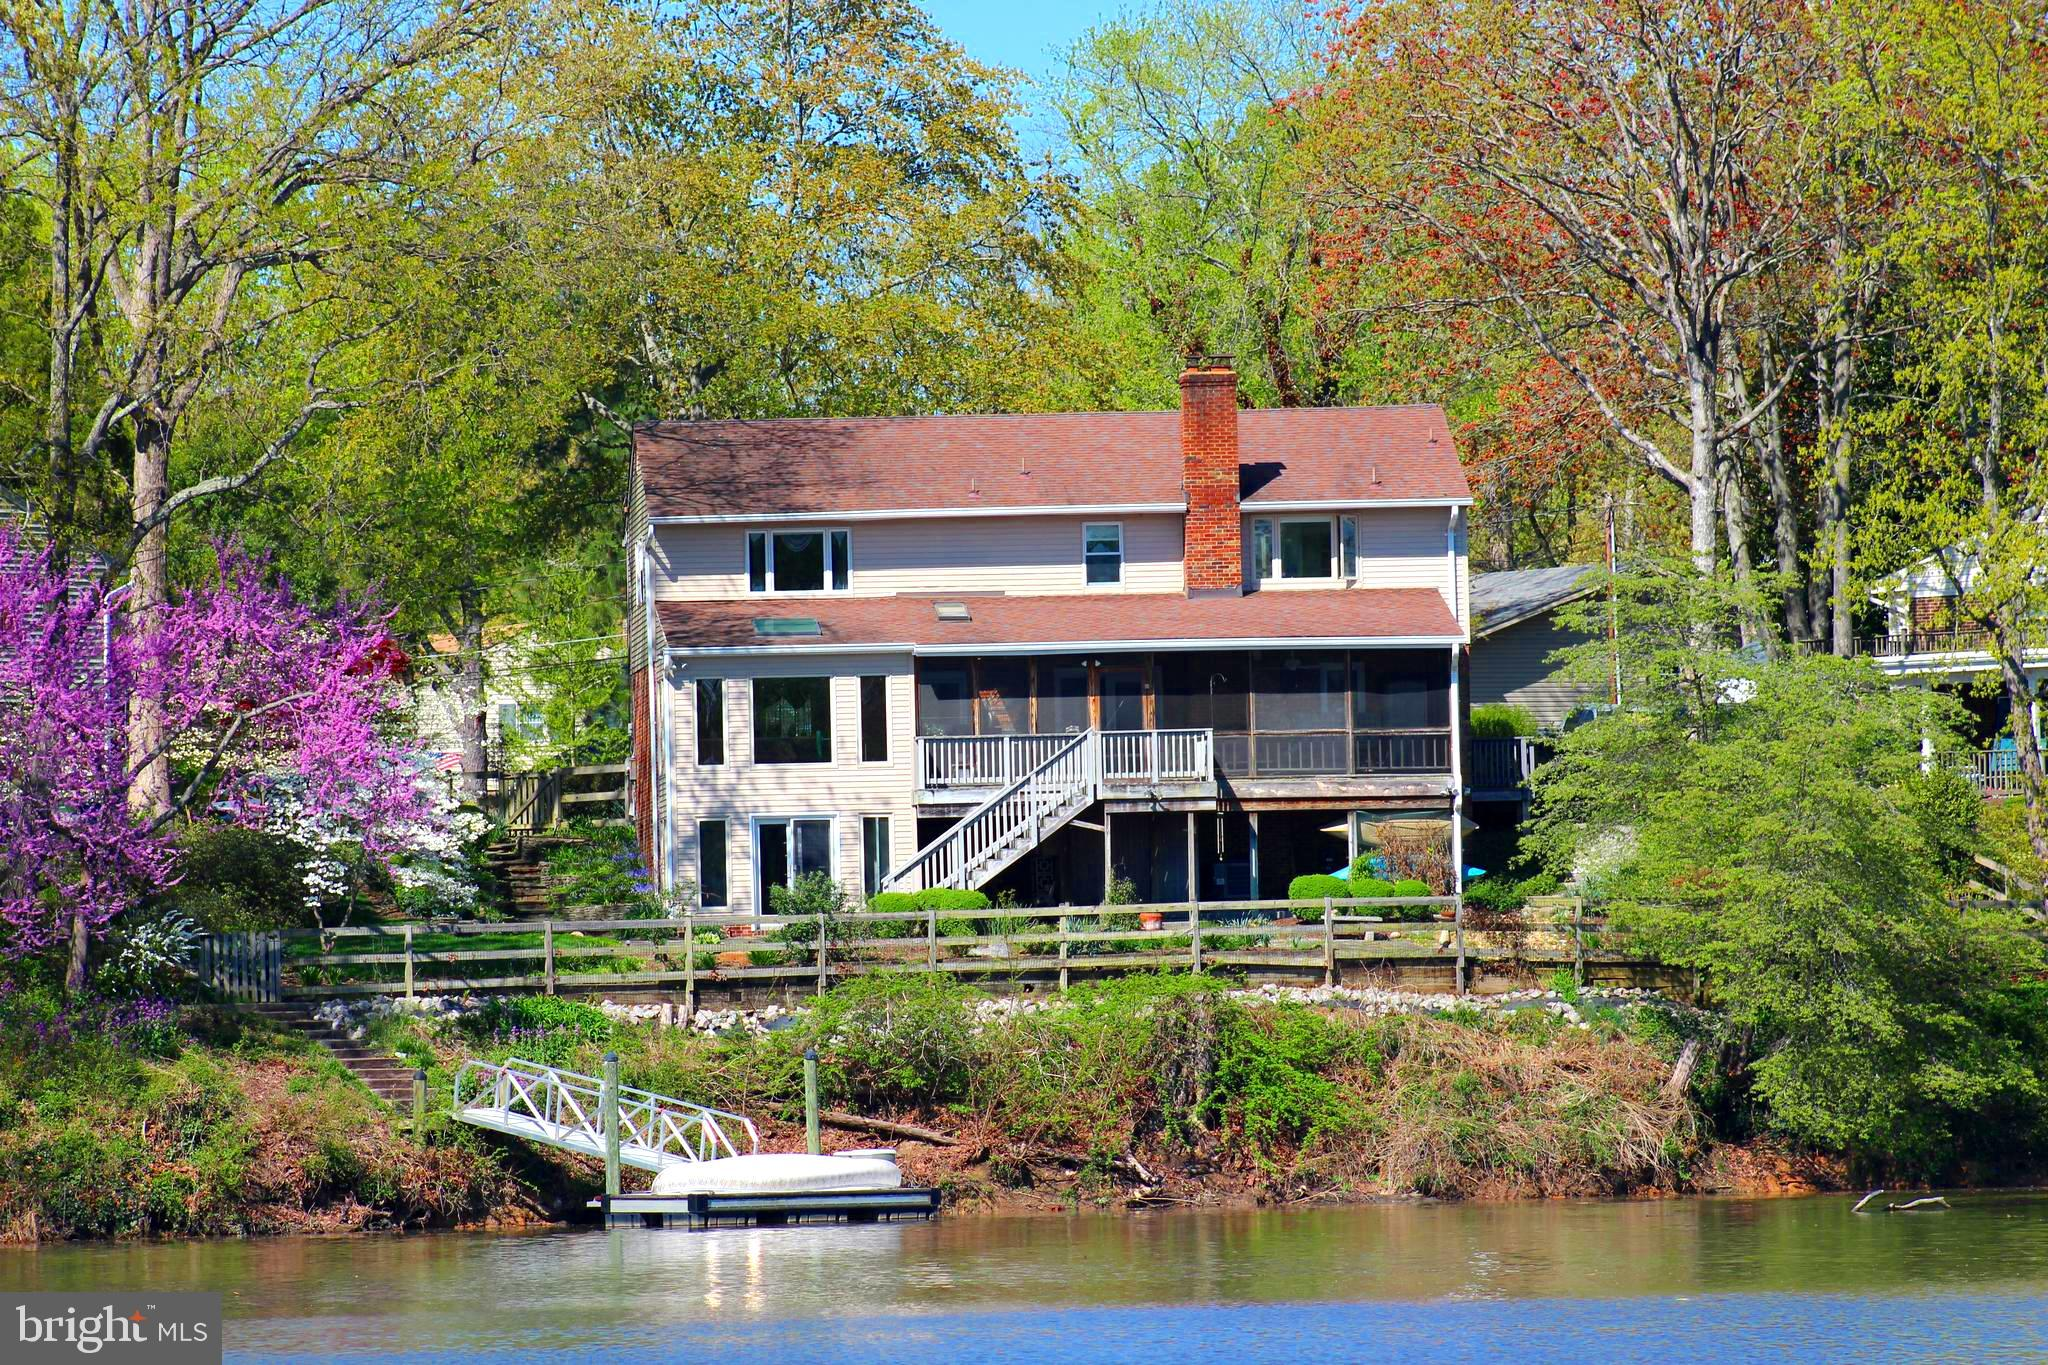 BYO Boat!!  Waterfront  4 BR, 3.5 Bath renovated and expanded  Home with your own Private Floating D